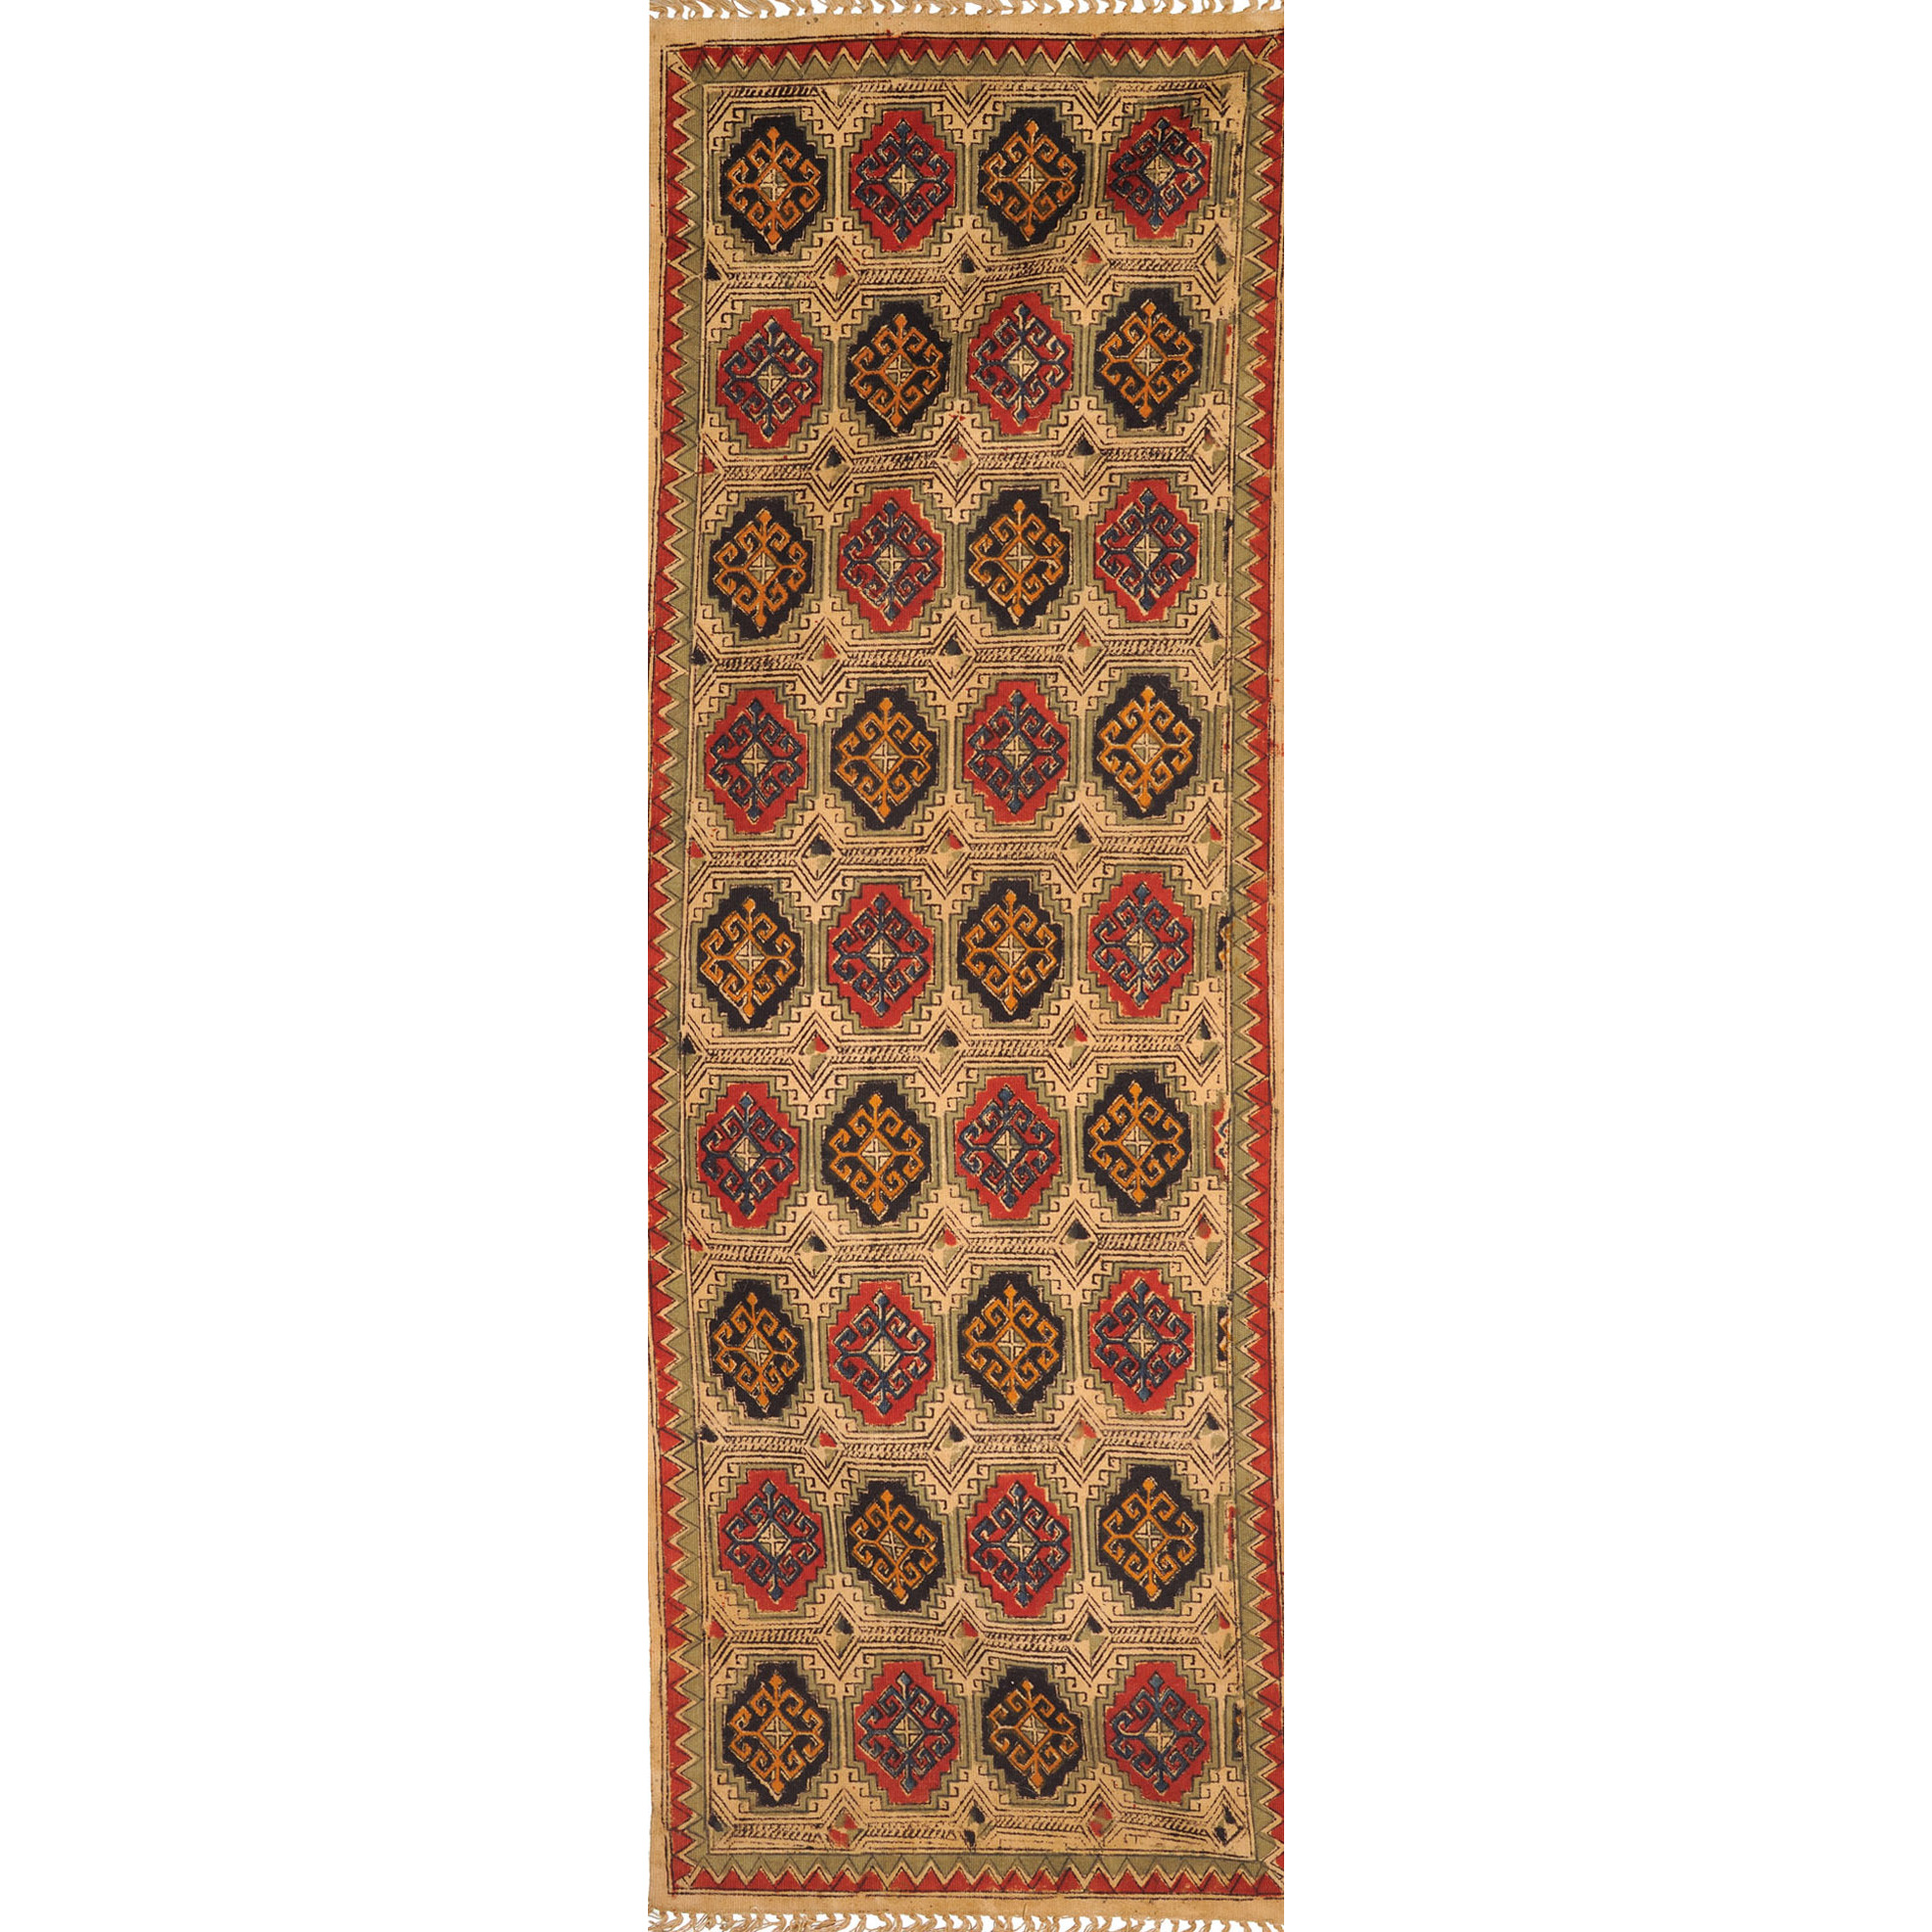 Multicolor Kalamkari Runner from Telangana with Printed Large Bootis